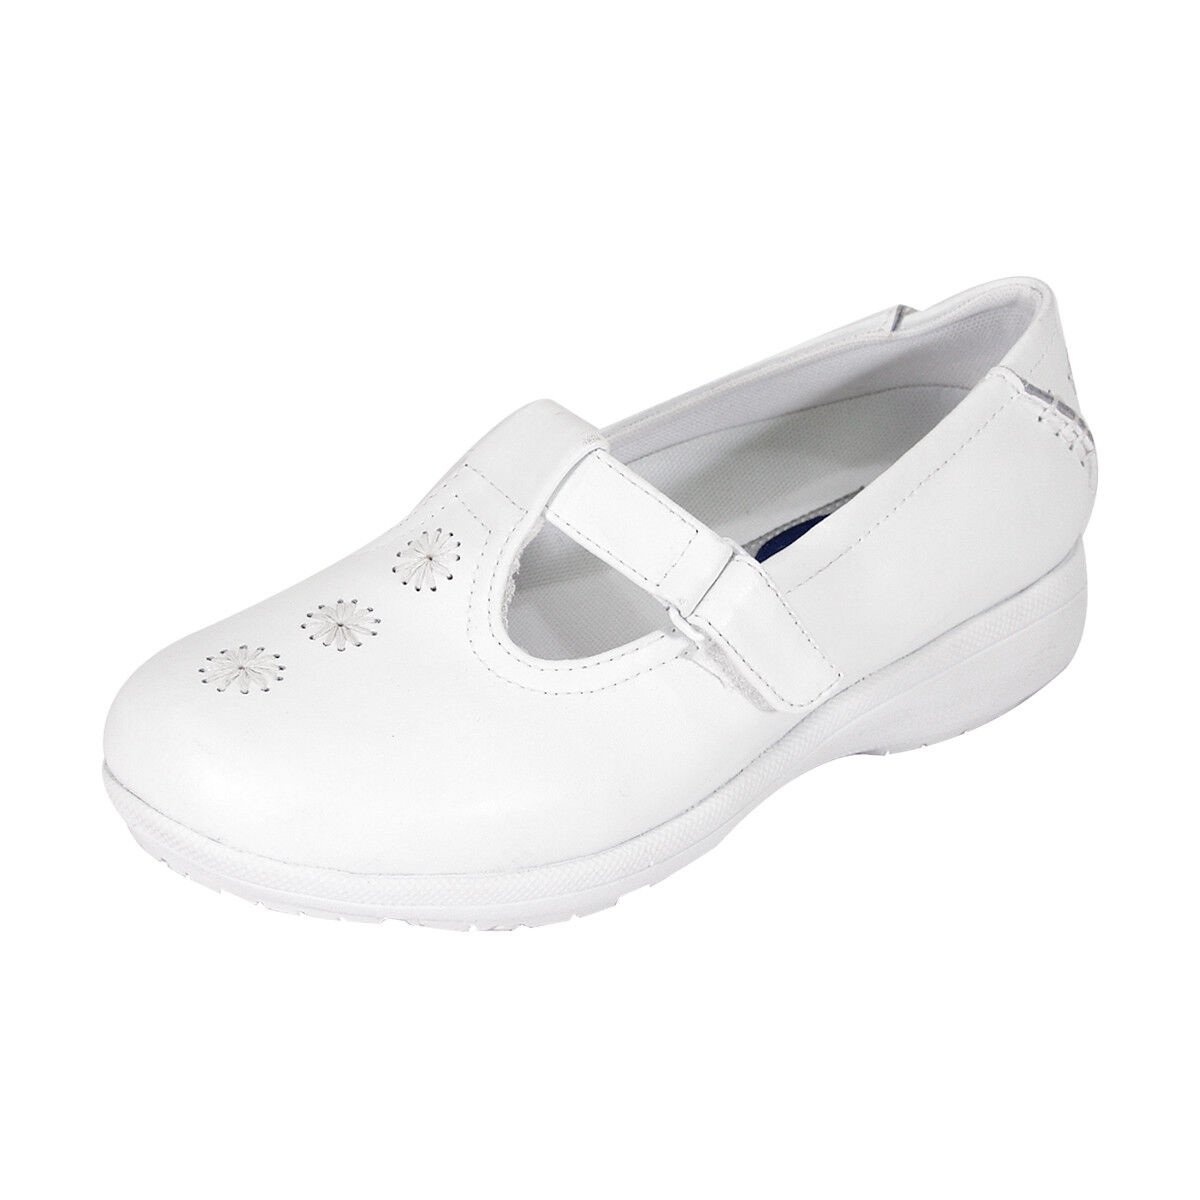 24 HOUR COMFORT Lily Damens Wide Width T-Strap Design with Stitched Spirals Schuhes